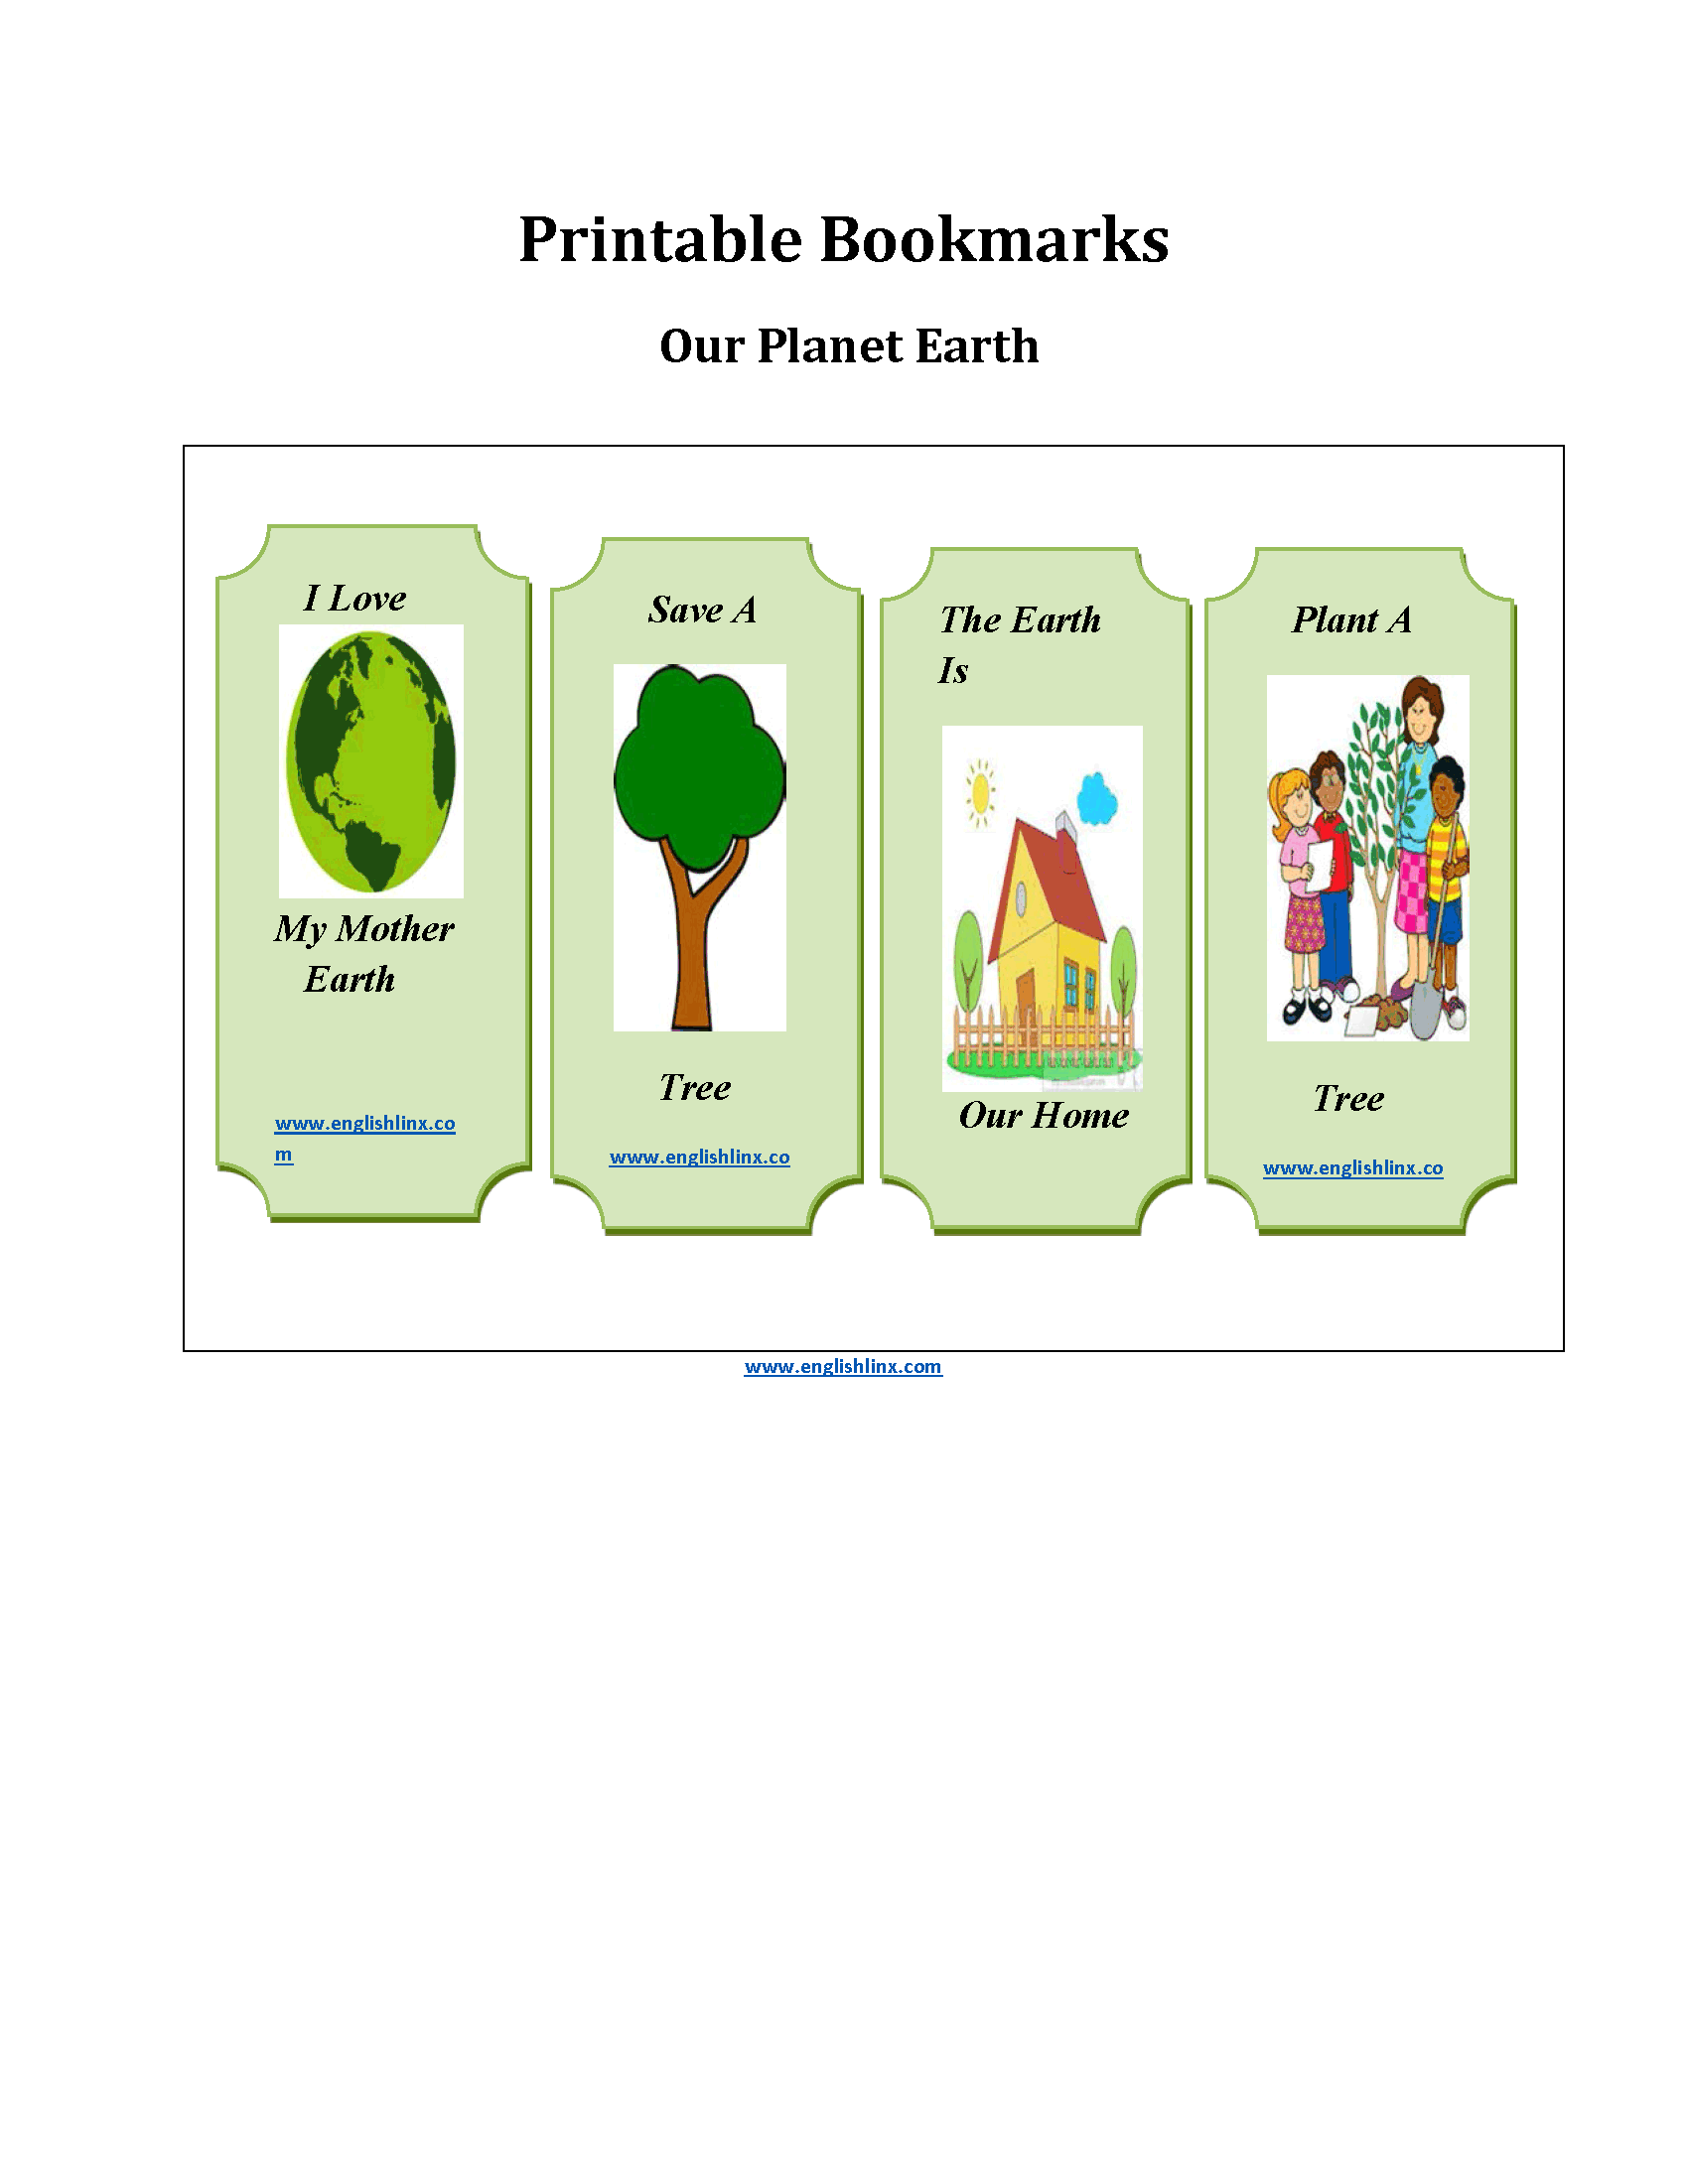 Worksheets Planet Earth Worksheets planet earth printable bookmarks worksheets englishlinx com board classroom resources worksheets